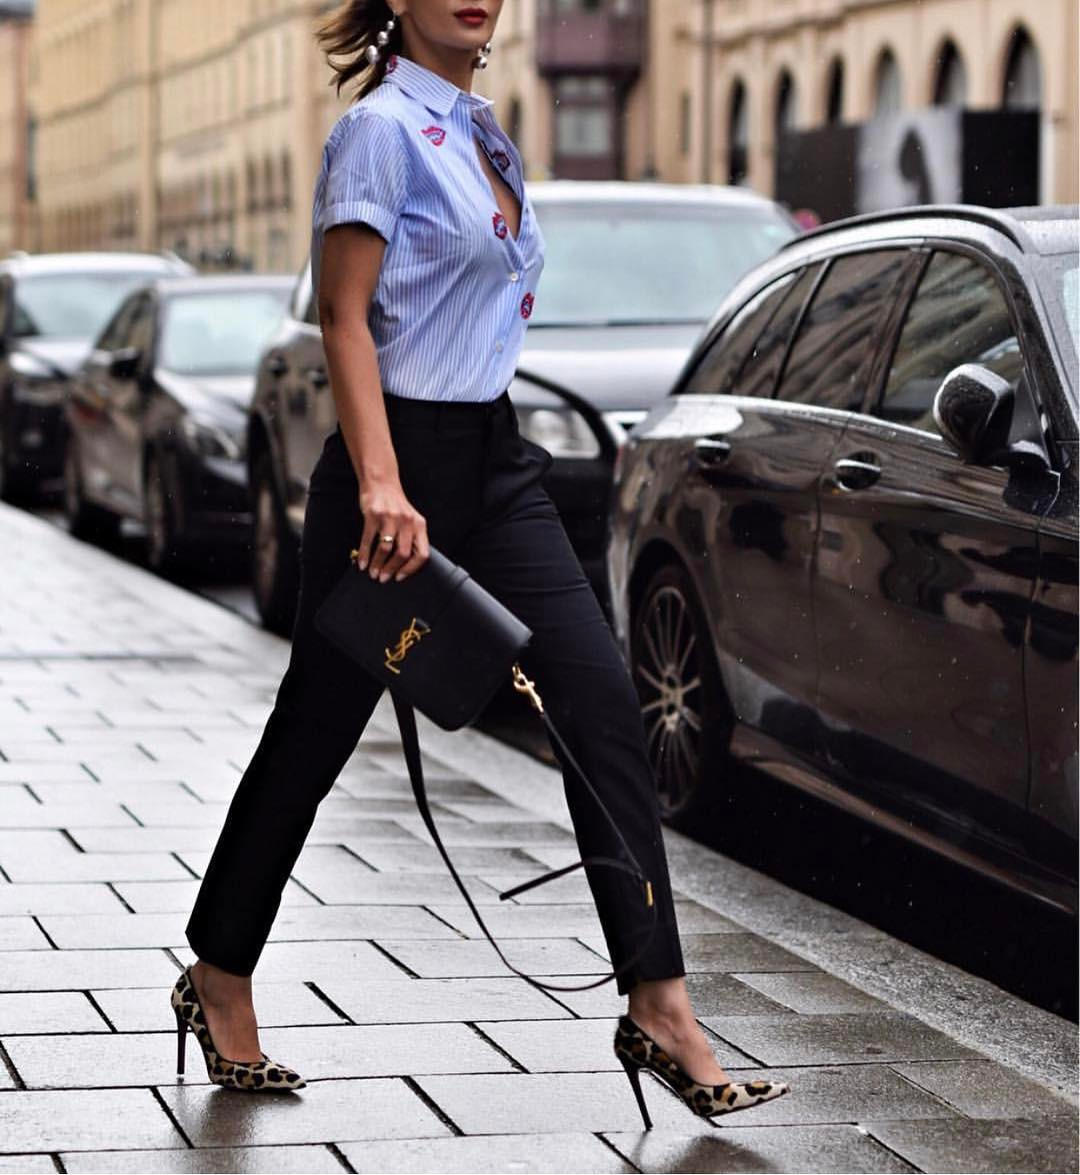 Pinstripe Shirt With Black Pants And Leopard Pumps: Office Style Look 2019